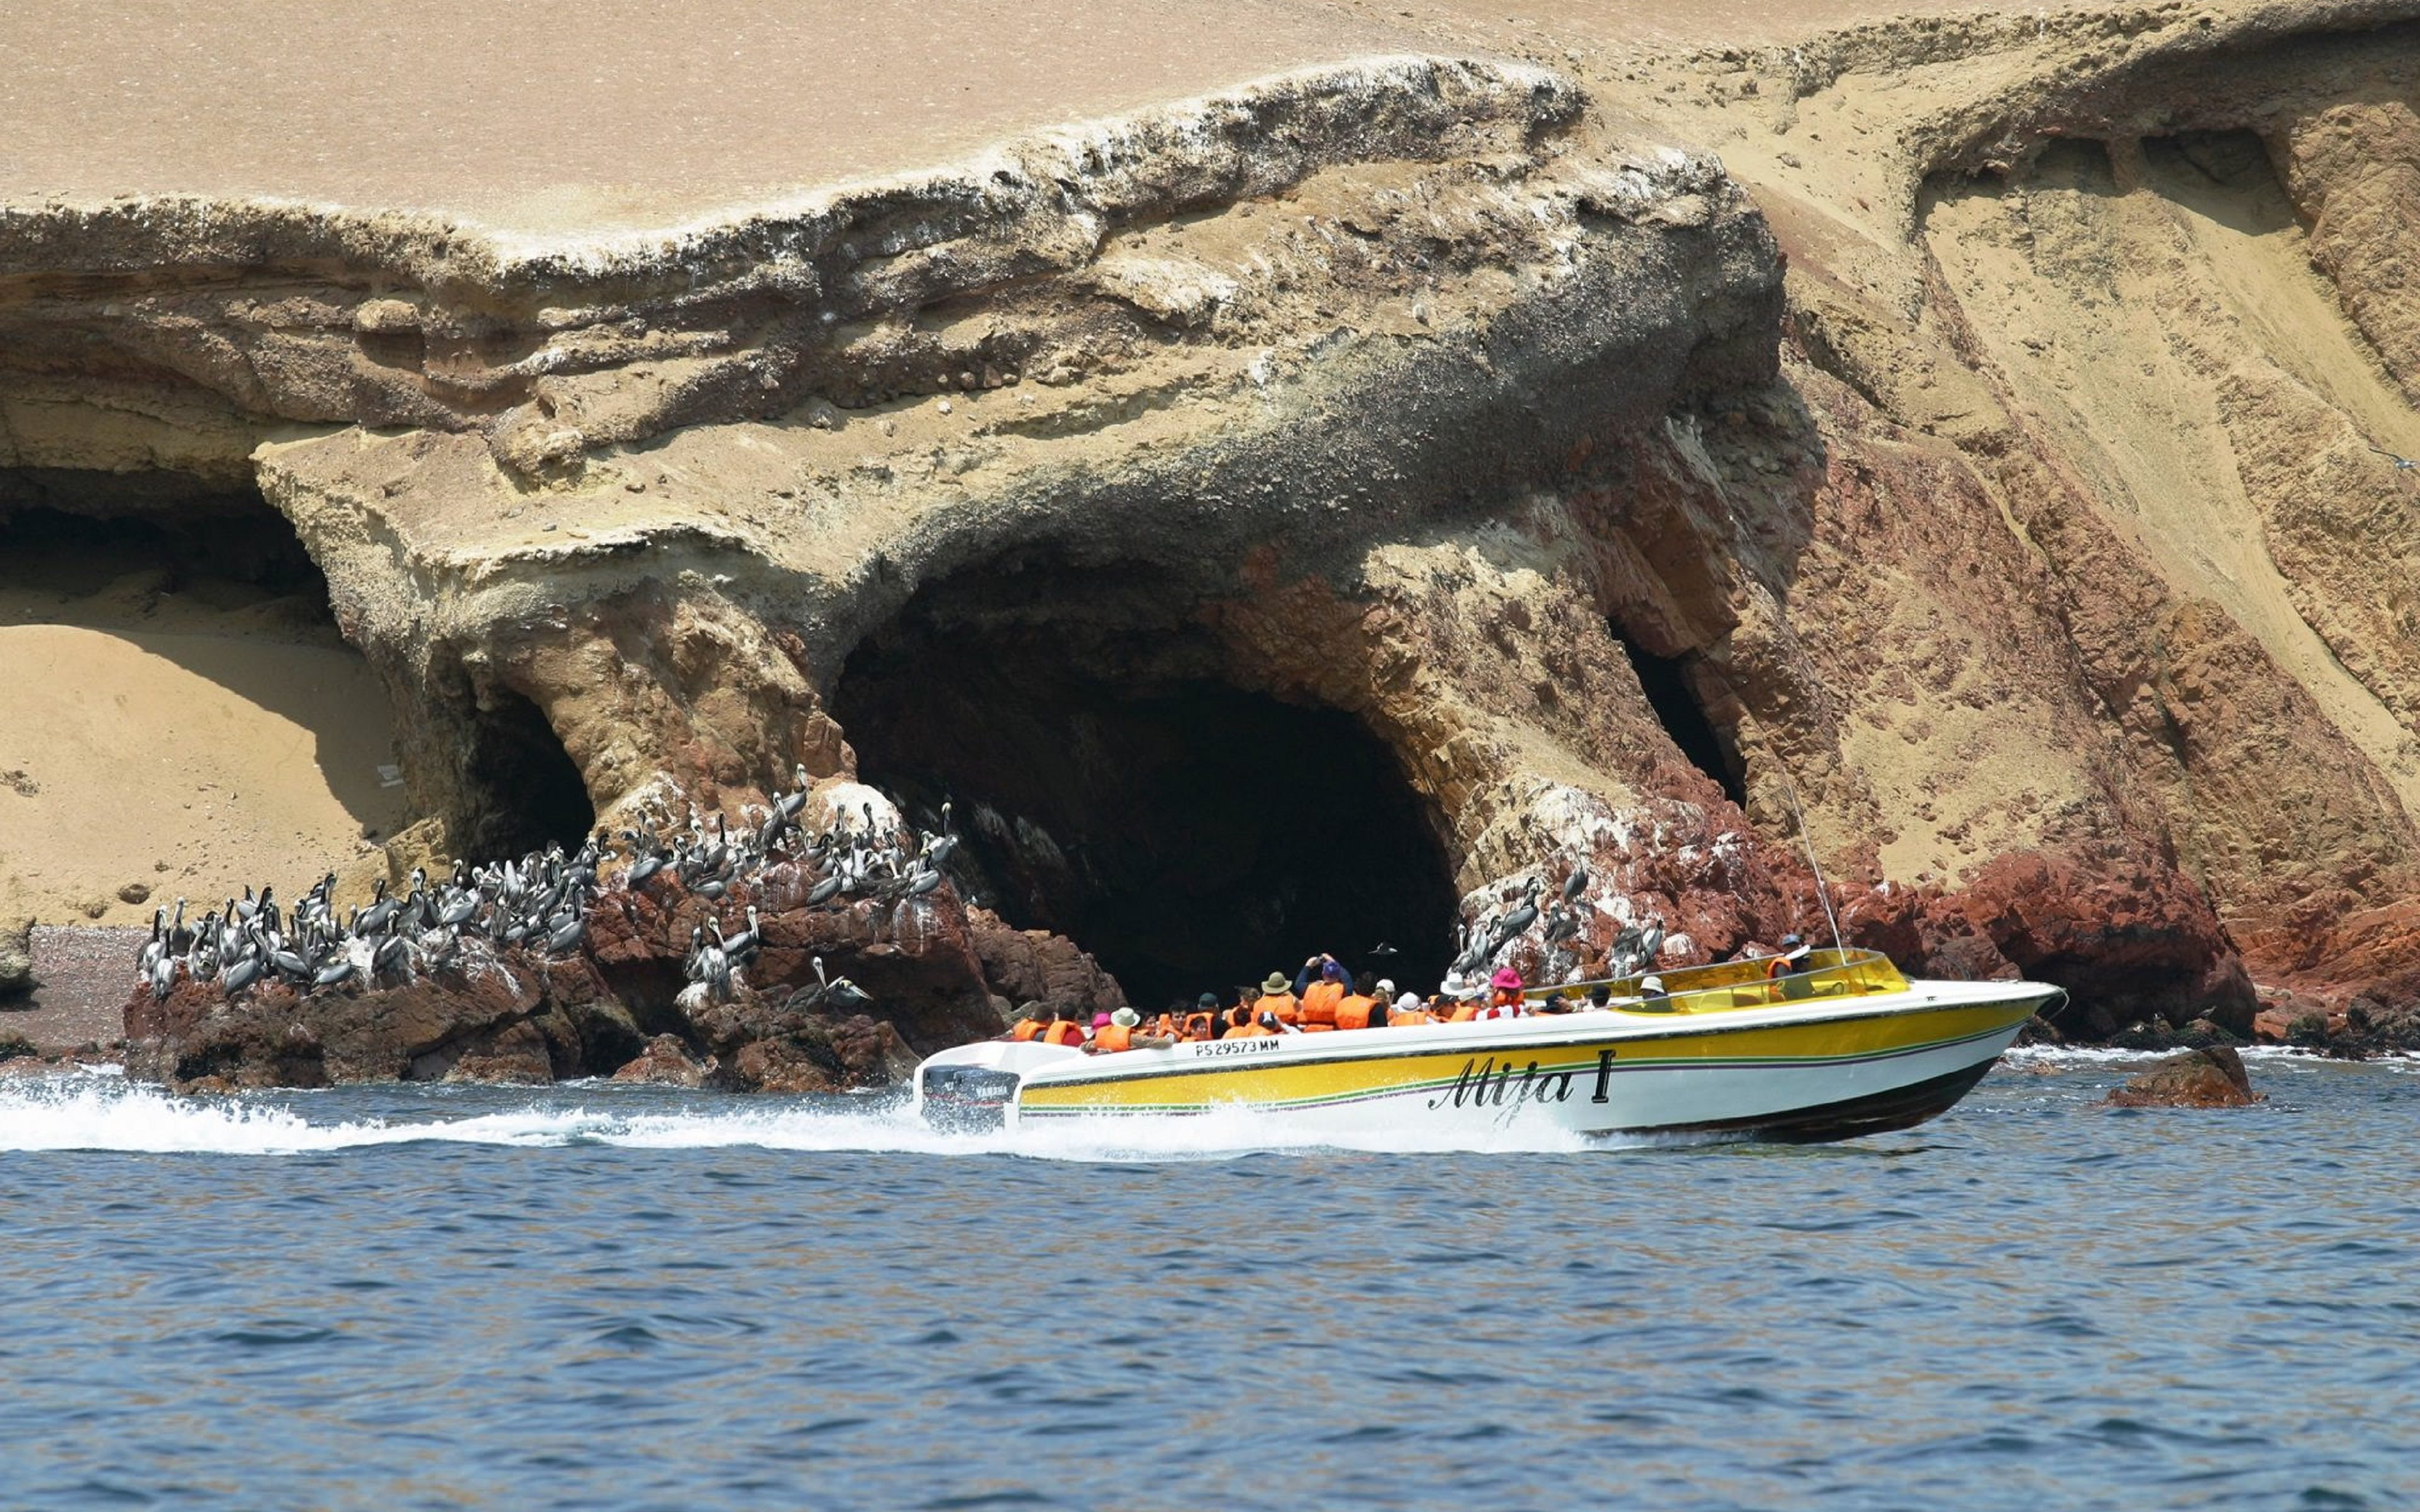 FEATURED PARACAS - Paracas & Islas Ballestas